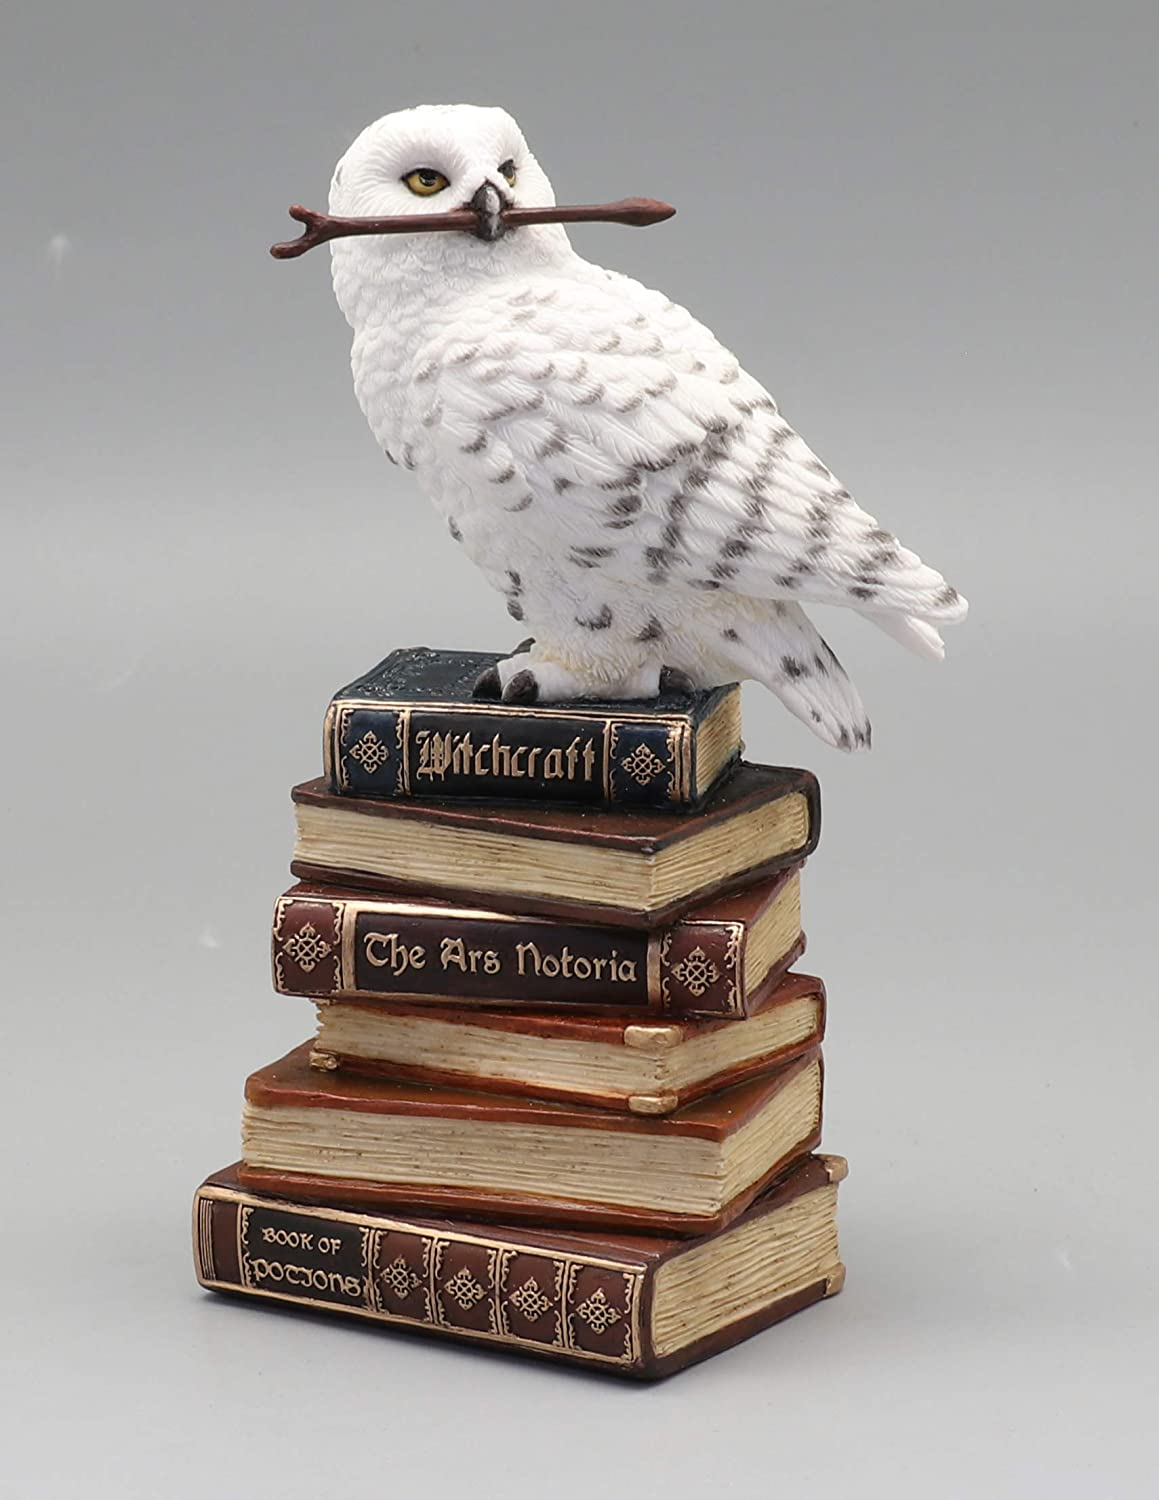 Veronese Design 5 1/2 Inch Magic Wand Snowy Owl On Book Stack Hand Painted Resin Statue Home Decor